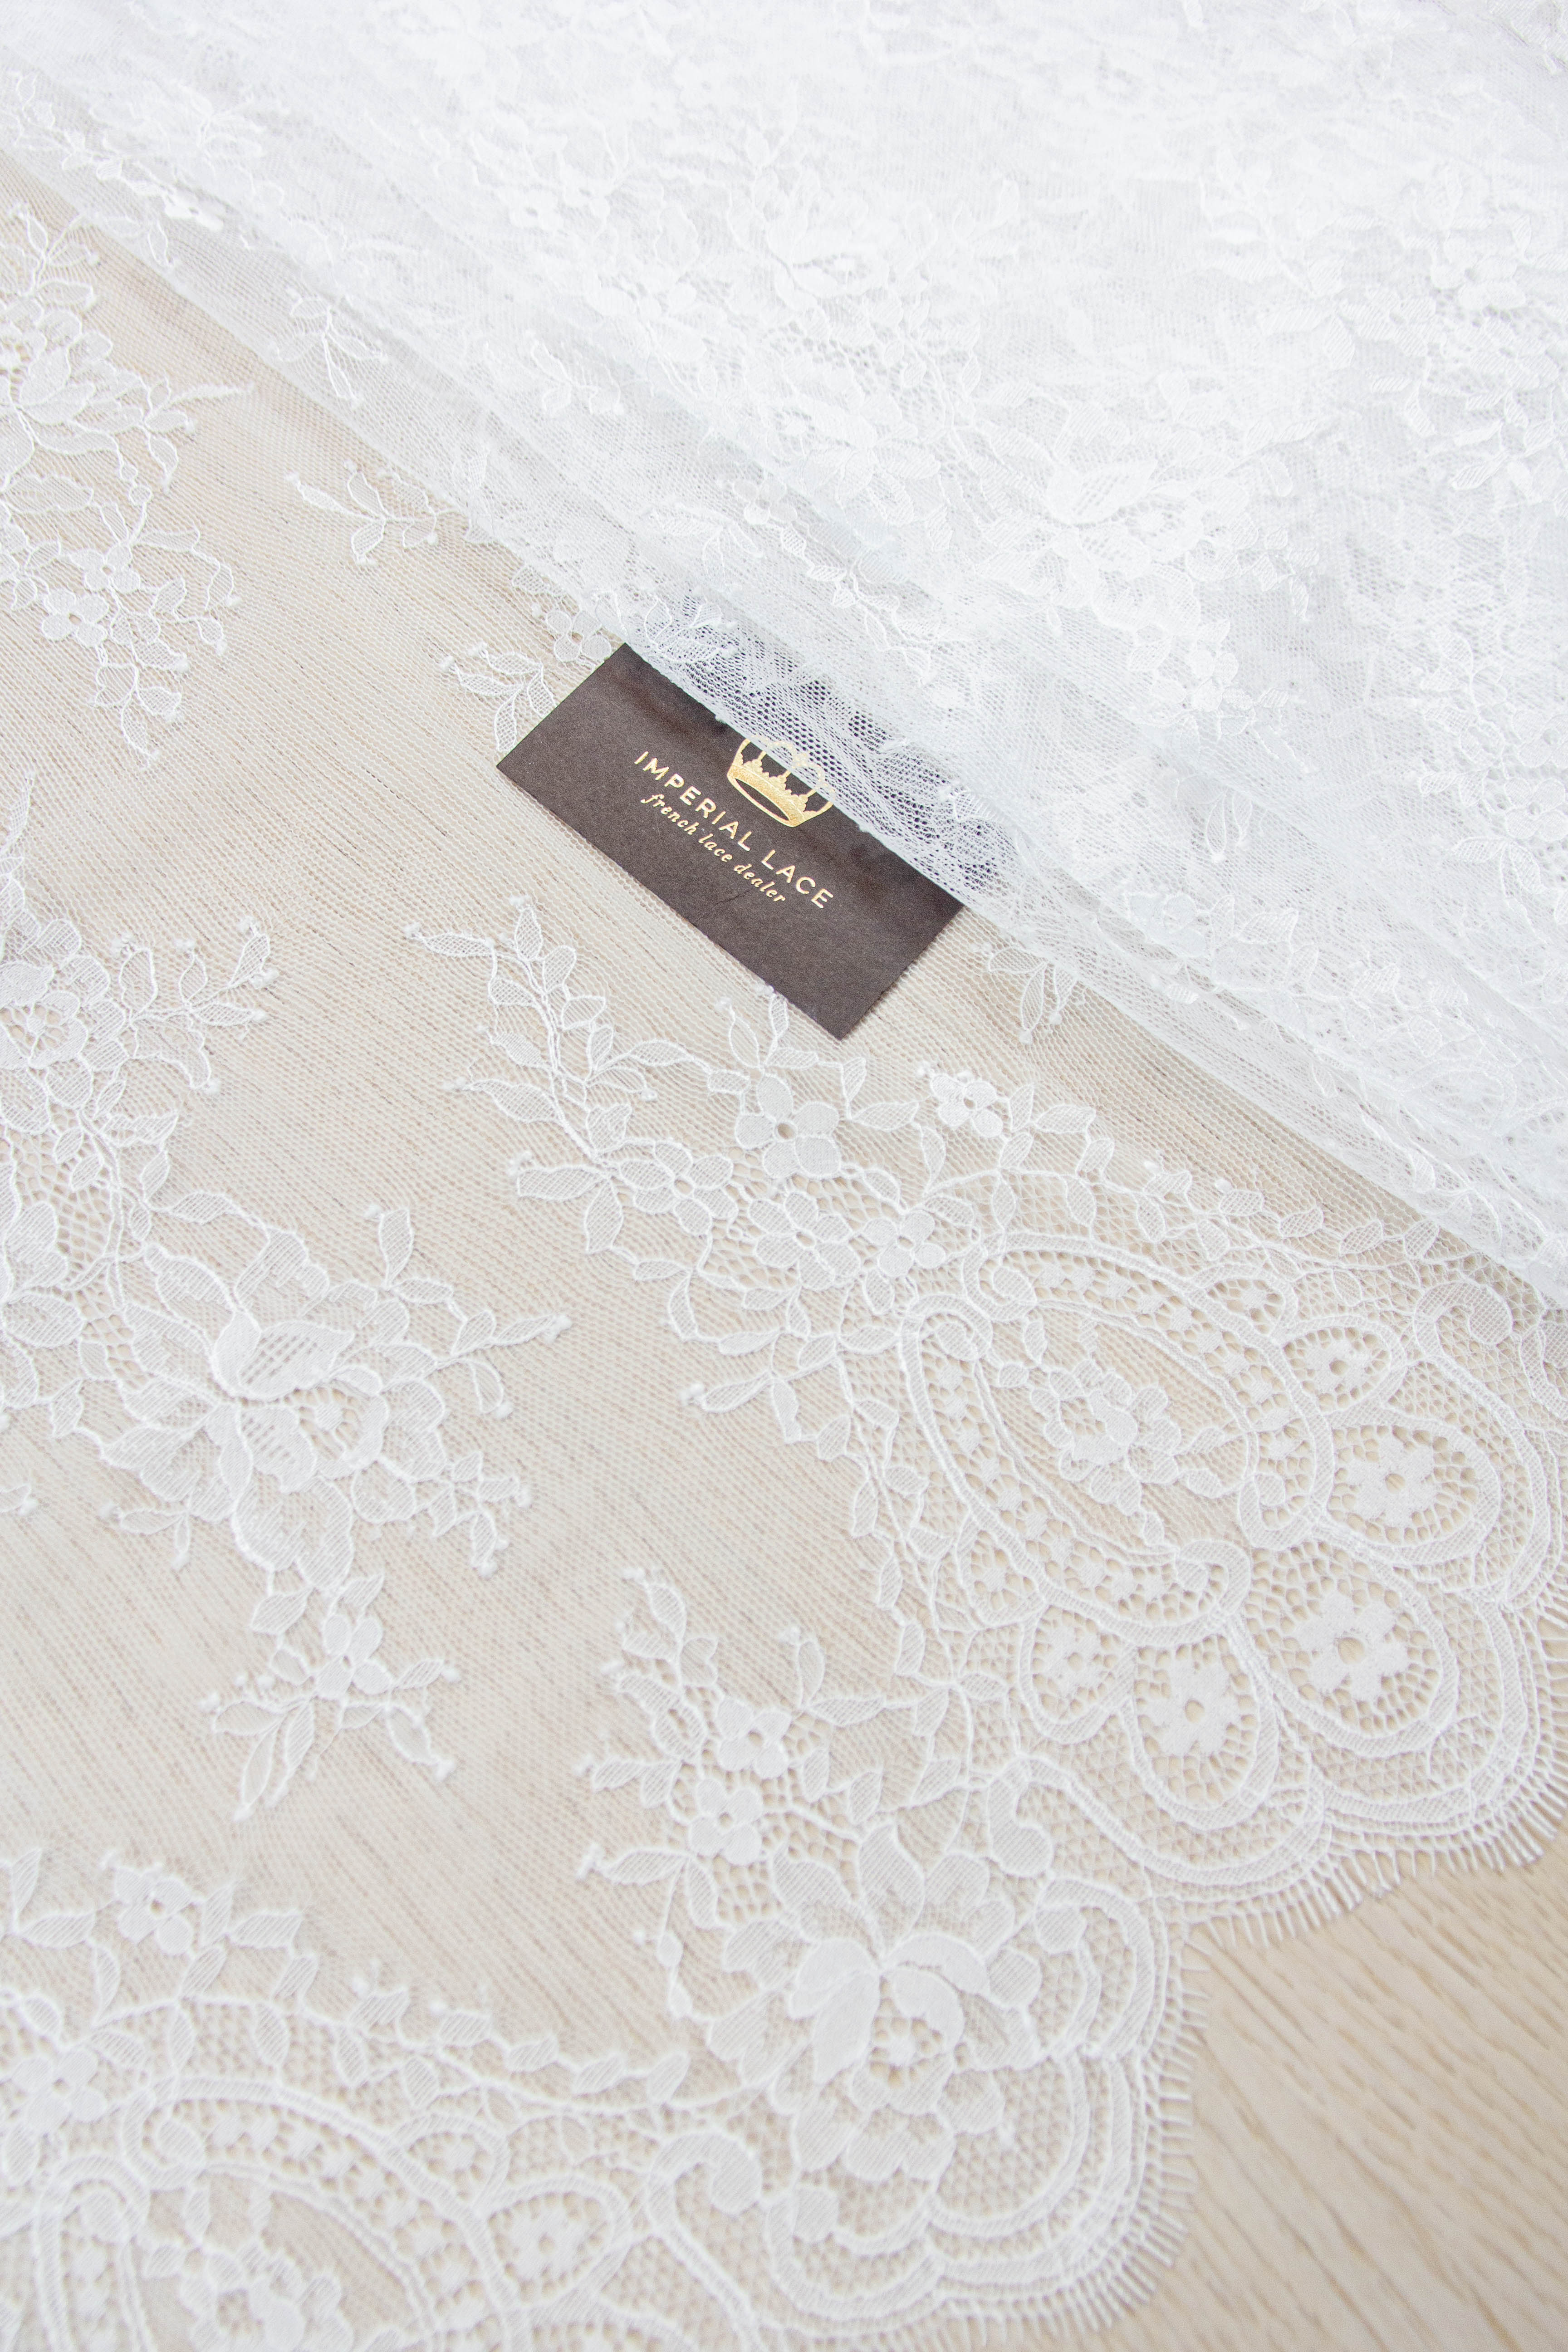 floral lace geometric stripes white chantilly lace B00344 French Lace Off white lace fabric